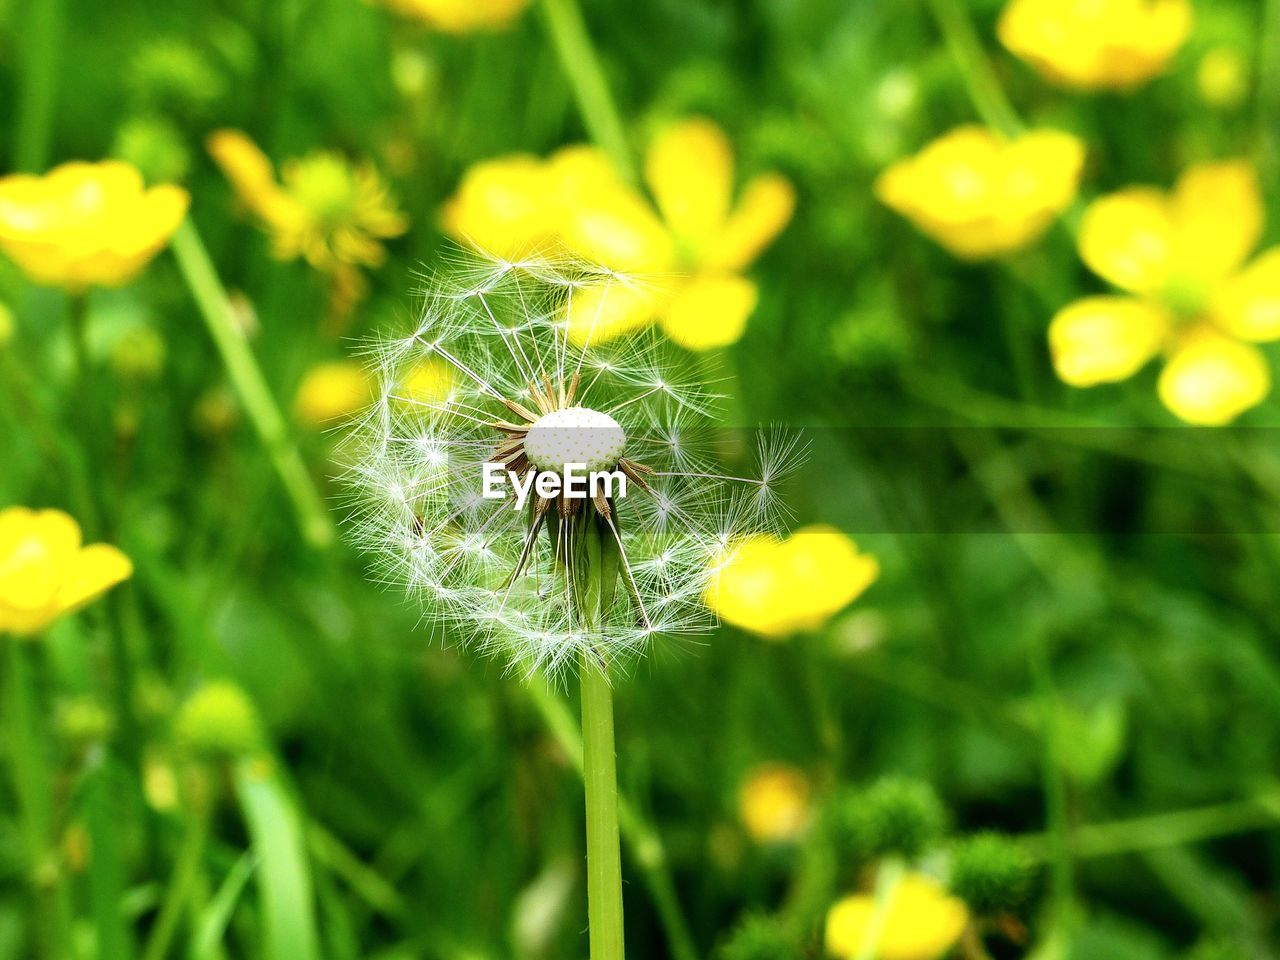 flower, dandelion, growth, nature, fragility, plant, beauty in nature, focus on foreground, close-up, freshness, outdoors, flower head, green color, wildflower, day, uncultivated, no people, yellow, blooming, grass